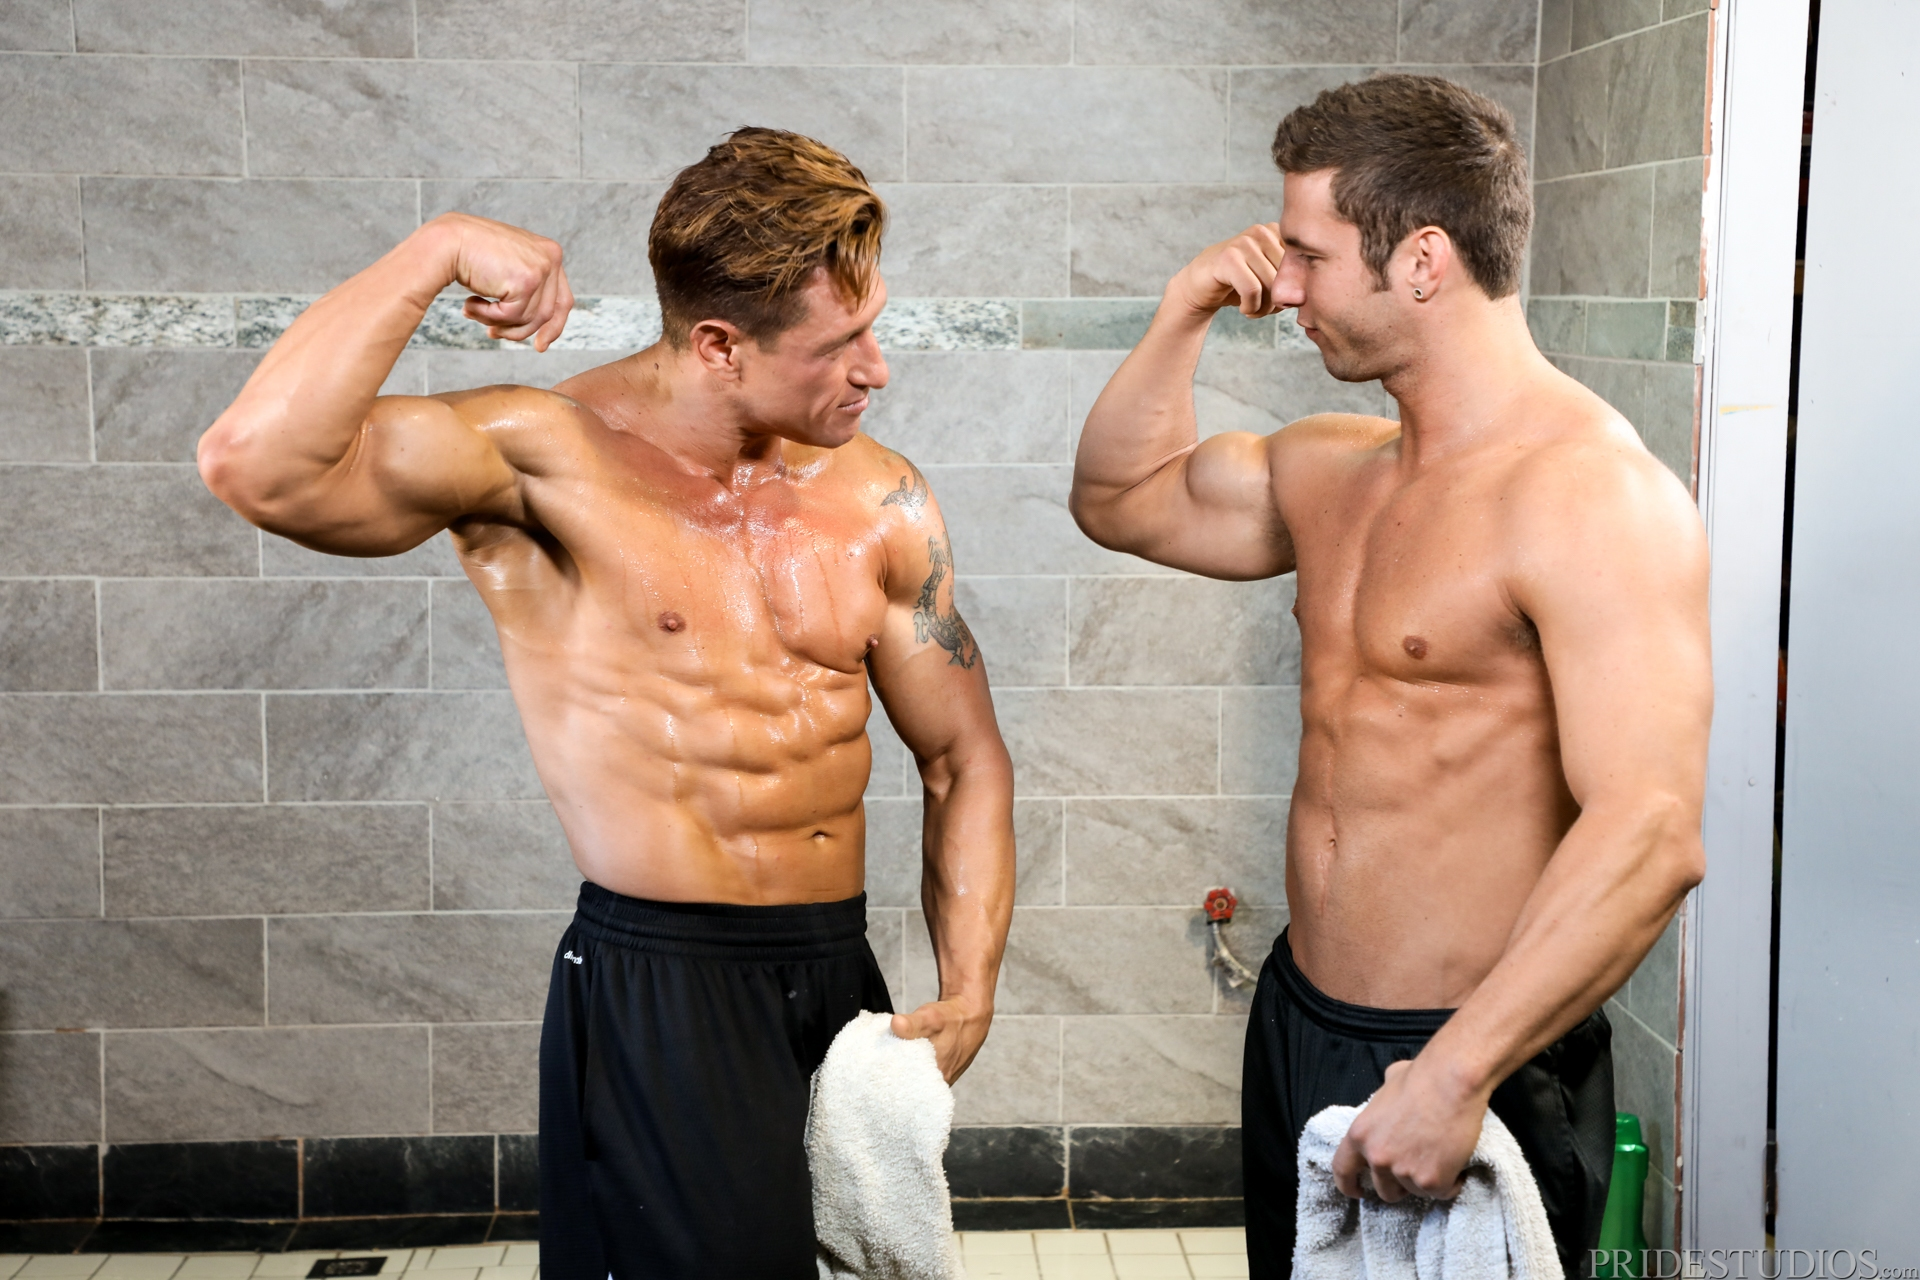 two muscled gym buddies comparing muscle in the showers